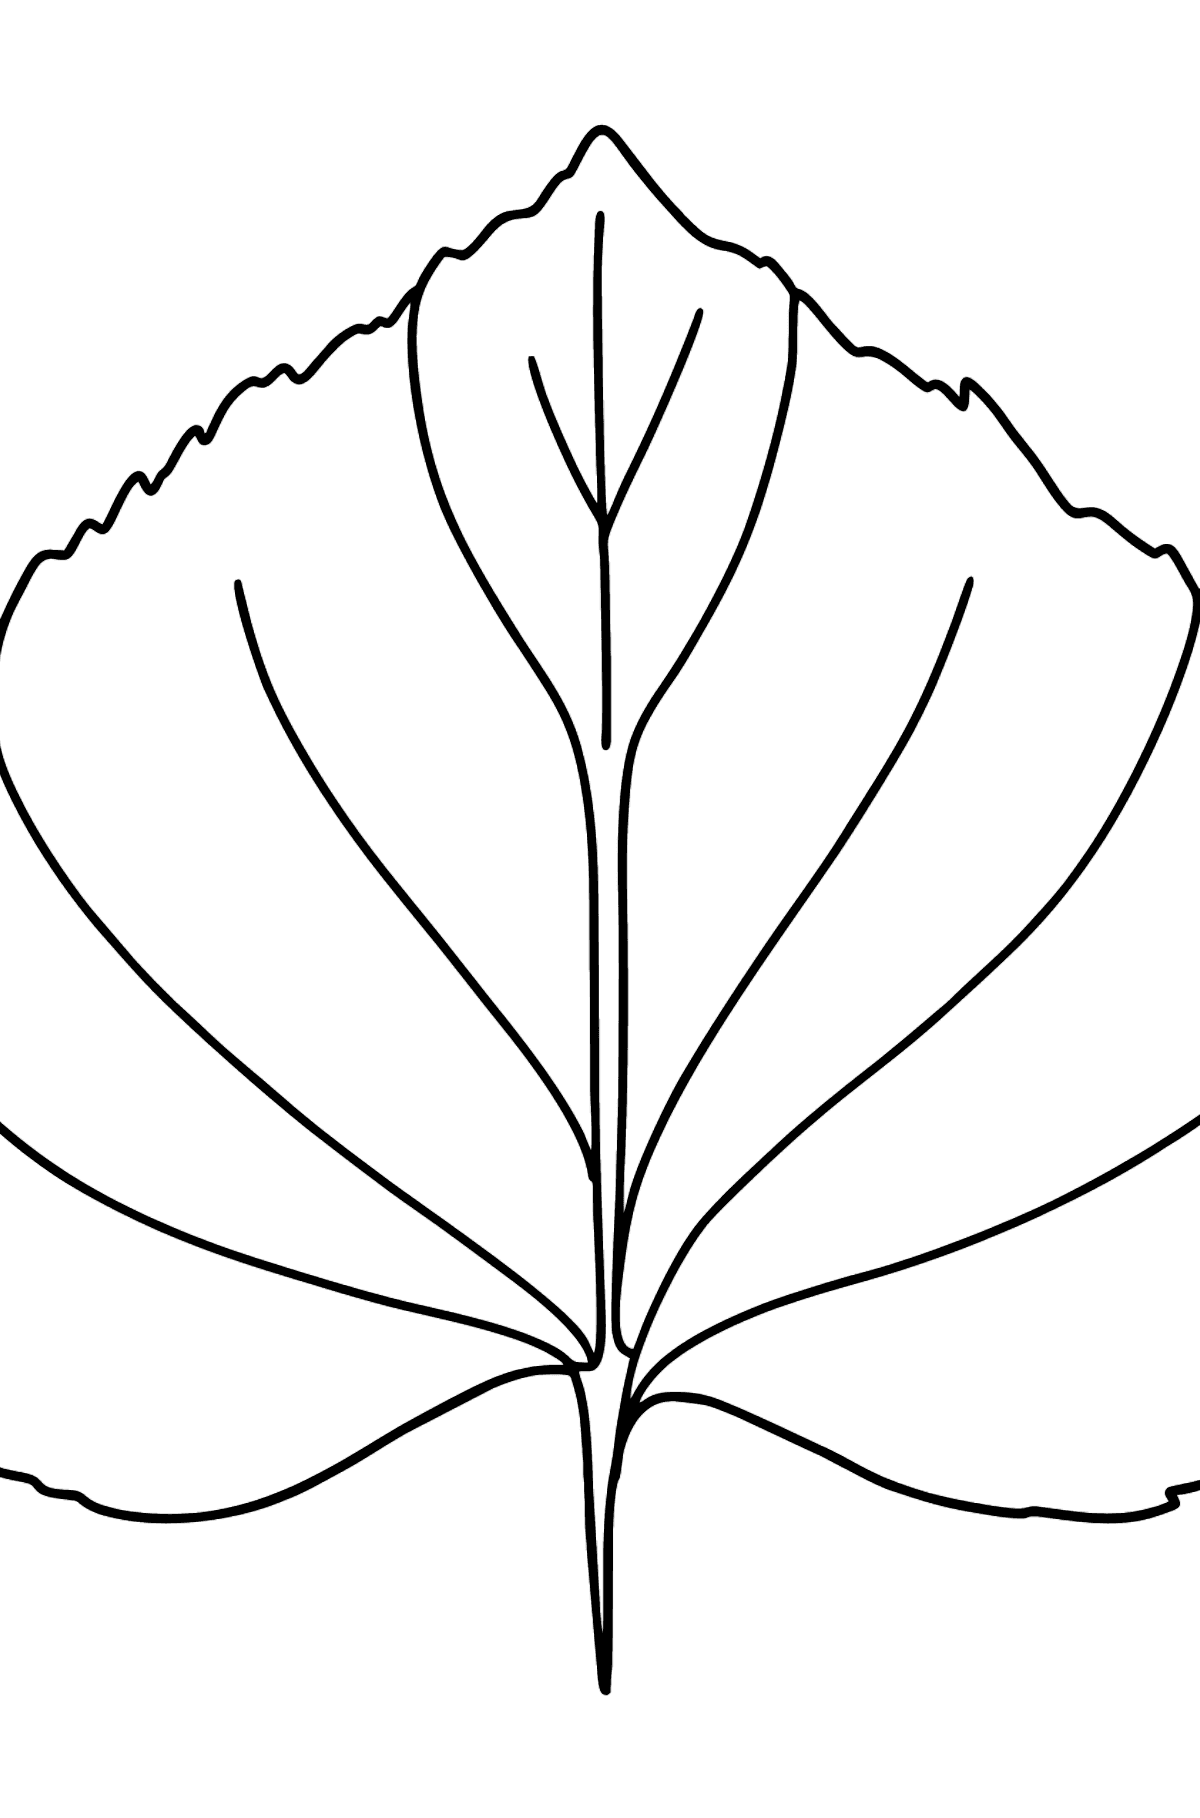 Linden Leaf coloring page - Coloring Pages for Kids